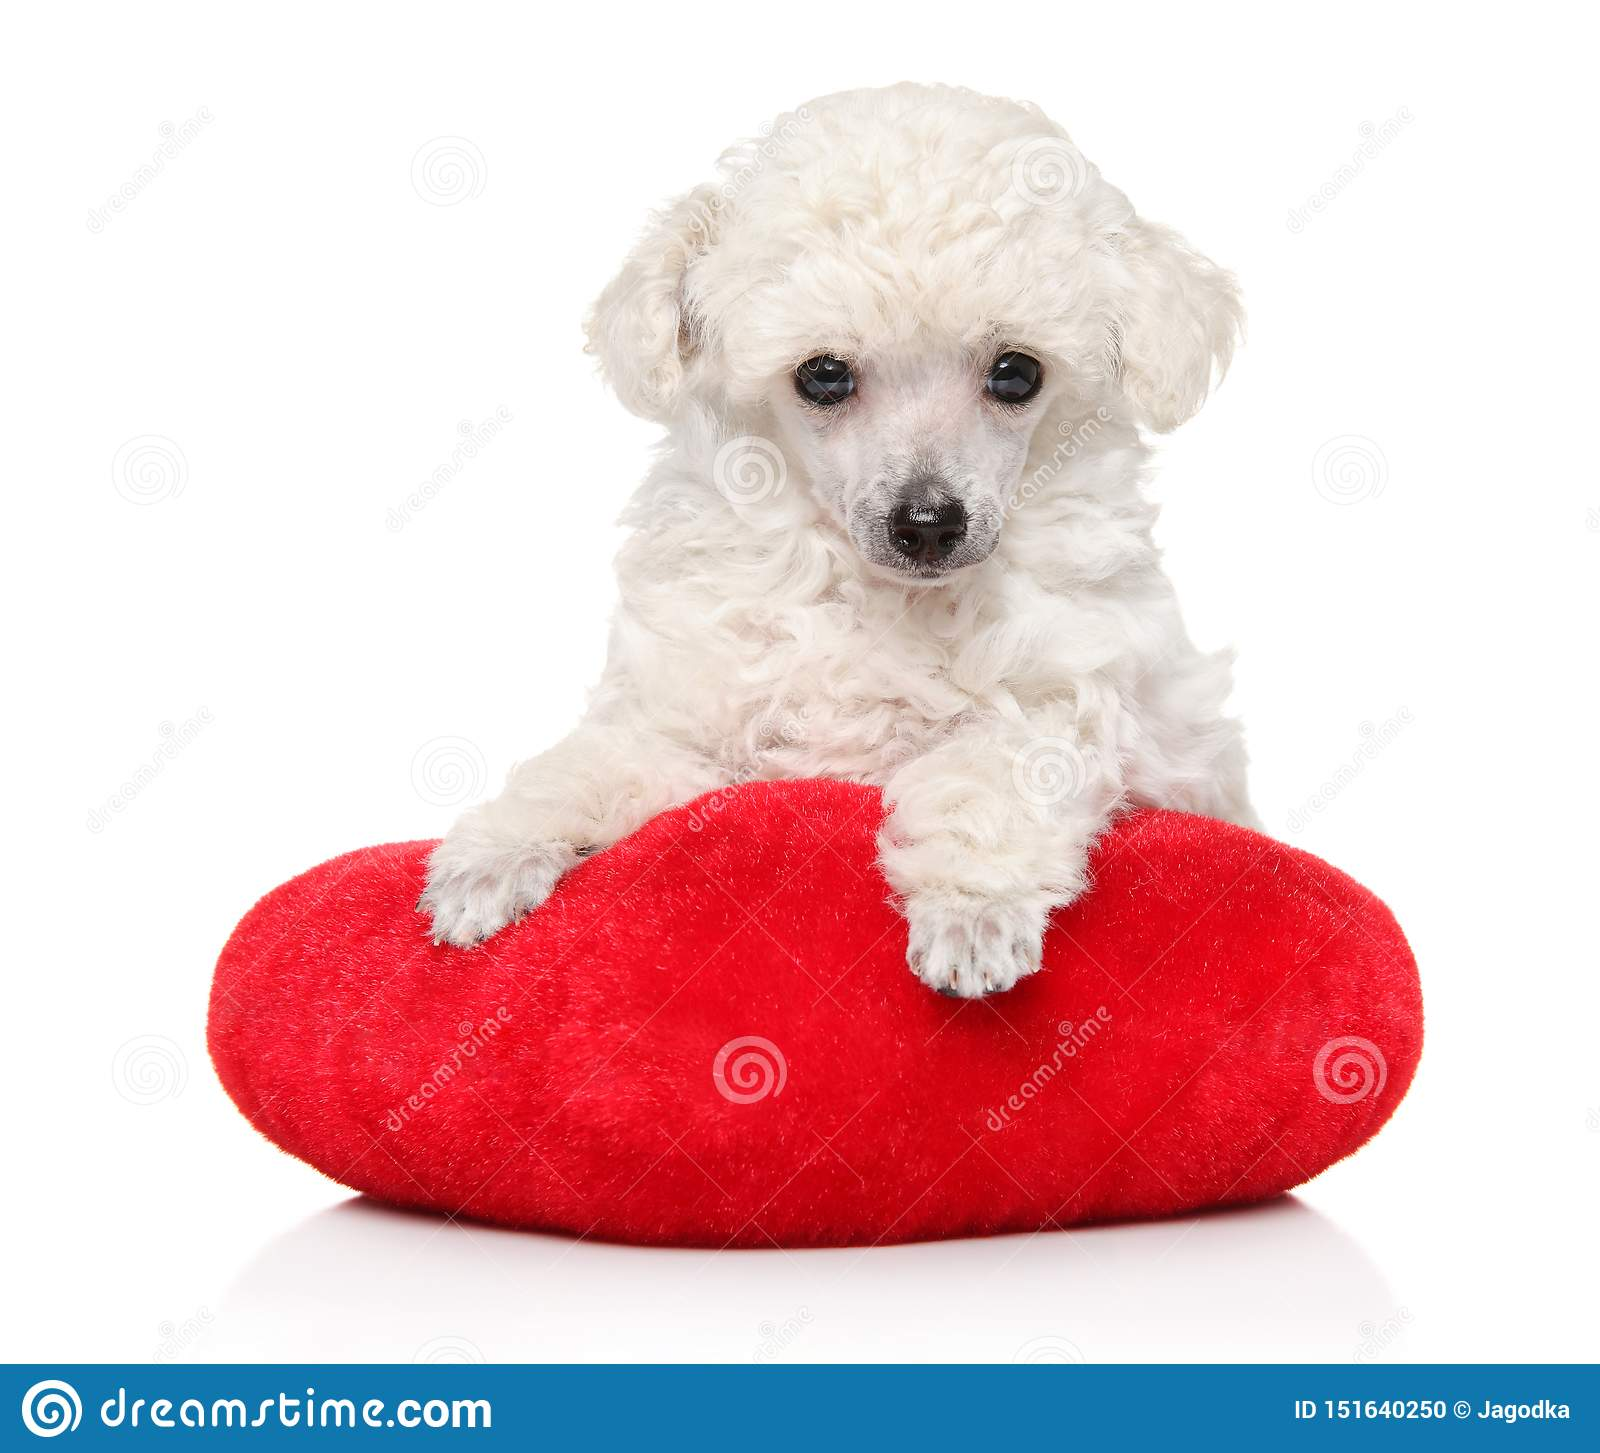 Toy Poodle Puppy Lying On Red Pillow Stock Photo Image Of Attractive Whelp 151640250